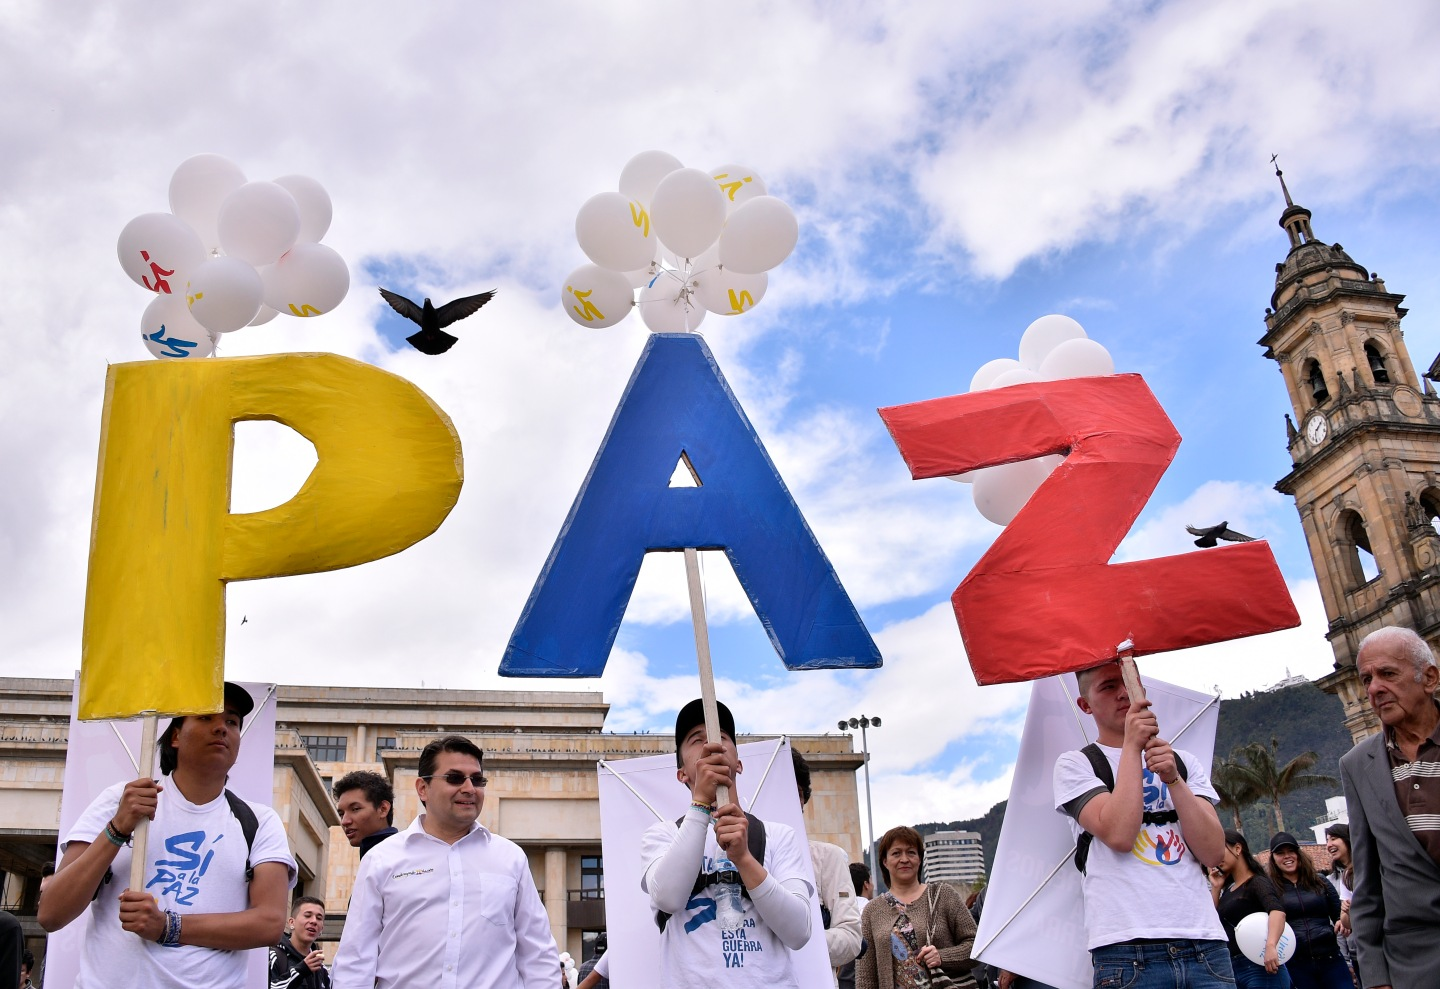 """People gather at Bogota's Bolivar main square on September 26, 2016, to celebrate the historic peace agreement between the Colombian government and the Revolutionary Armed Forces of Colombia (FARC). Colombia will turn the page on a half-century conflict that has stained its modern history with blood when the FARC rebels and the government sign a peace deal on Monday. President Juan Manuel Santos and the leader of the FARC, Rodrigo Londono -- better known by his nom de guerre, Timoleon """"Timochenko"""" Jimenez -- are set to sign the accord at 2200 GMT in a ceremony in the colorful colonial city of Cartagena on the Caribbean coast. / AFP PHOTO / GUILLERMO LEGARIA"""